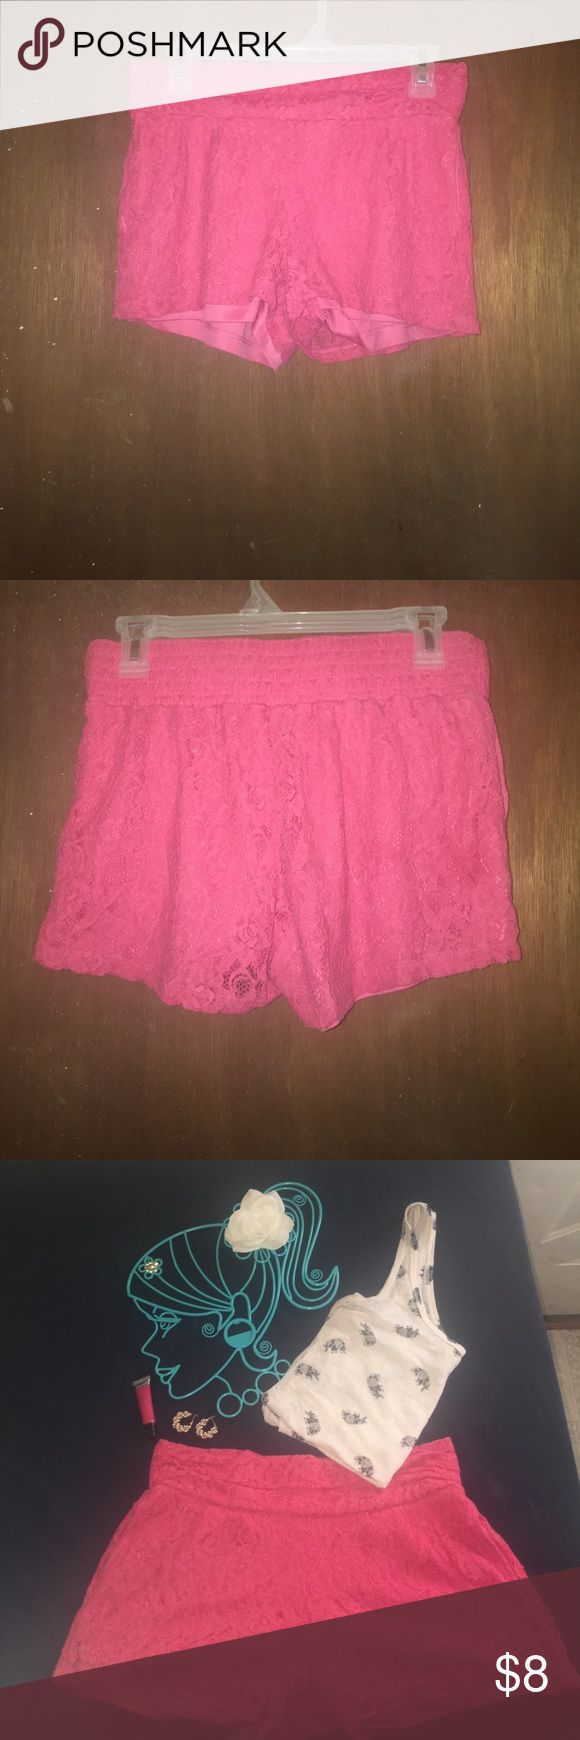 Be Bop Romantic Pink Lace Shorts These shorts are absolutely adorable and easy to pair with just about any tank top or camisole and sandal or flip flop!! They are Be Bop. These shorts were designed in California and made in Vietnam. The outside lace is made of 60%cotton and 40%nylon and the inside lining is made of 100%polyester. BeBop Shorts